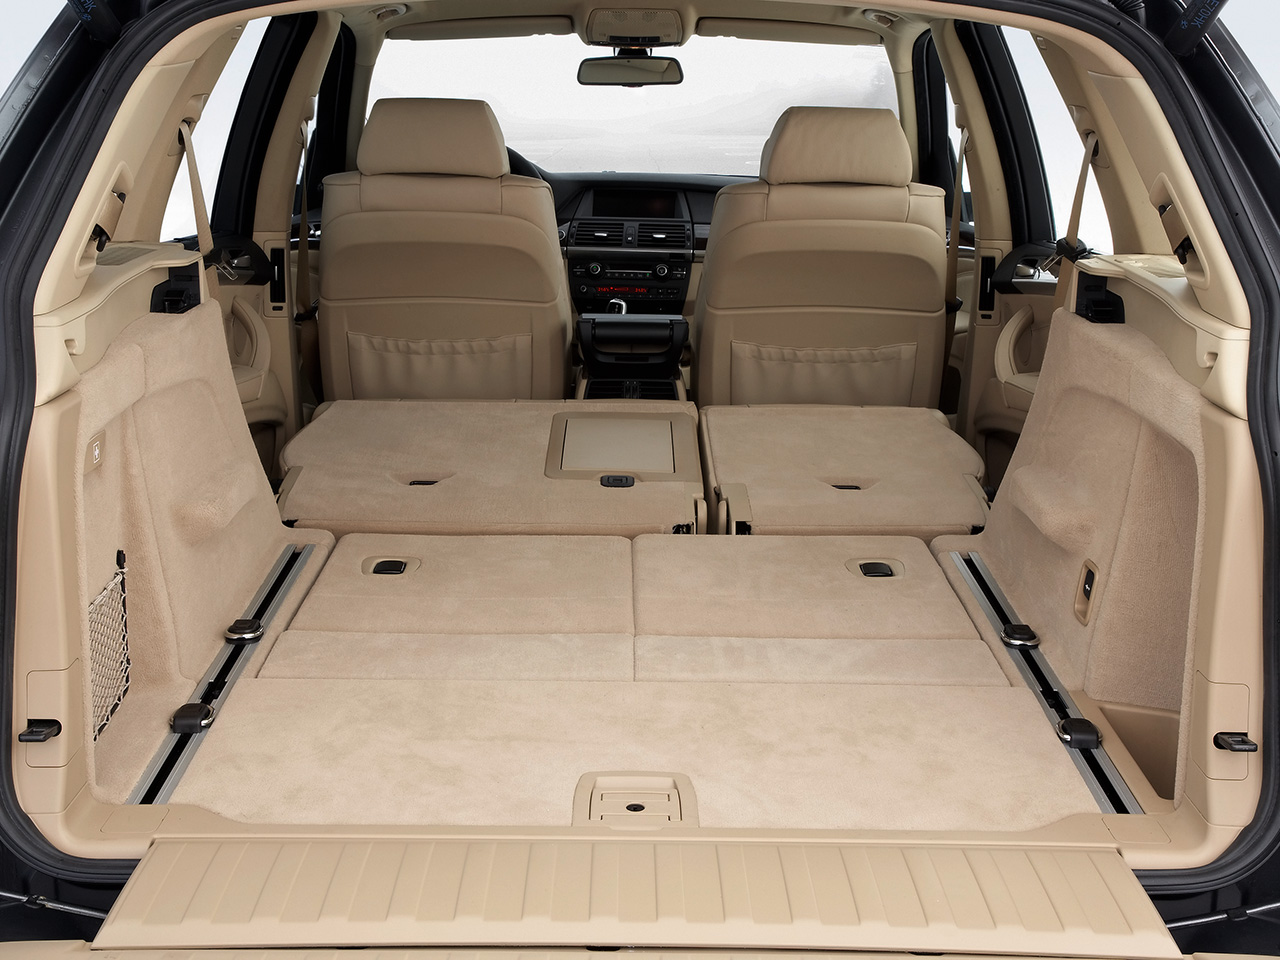 bmw x5 interior car top of design trend. Black Bedroom Furniture Sets. Home Design Ideas